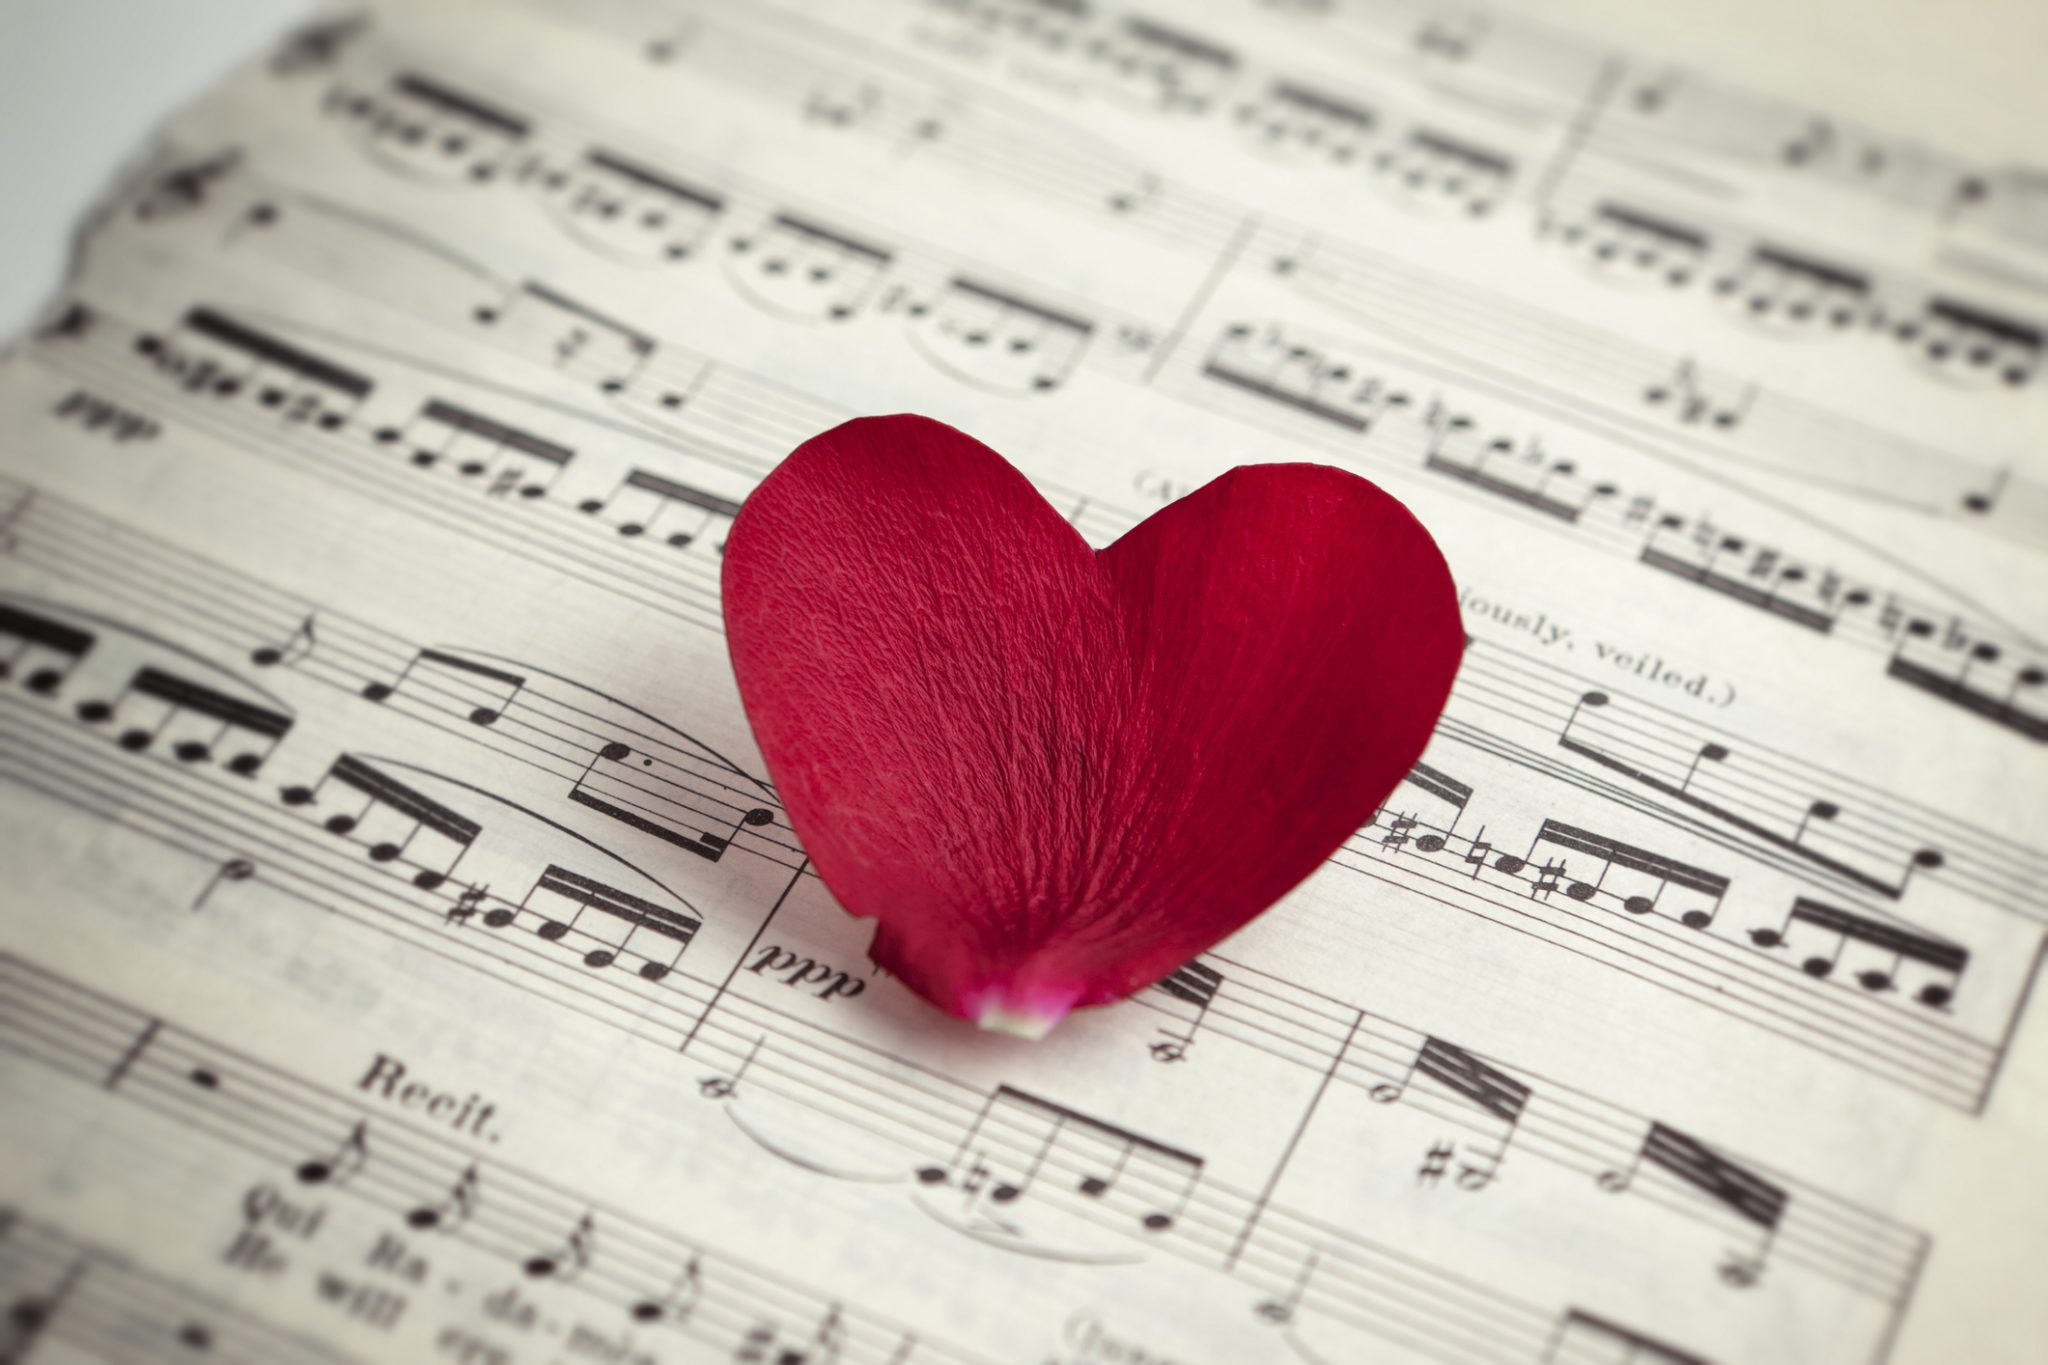 Heart petal on music